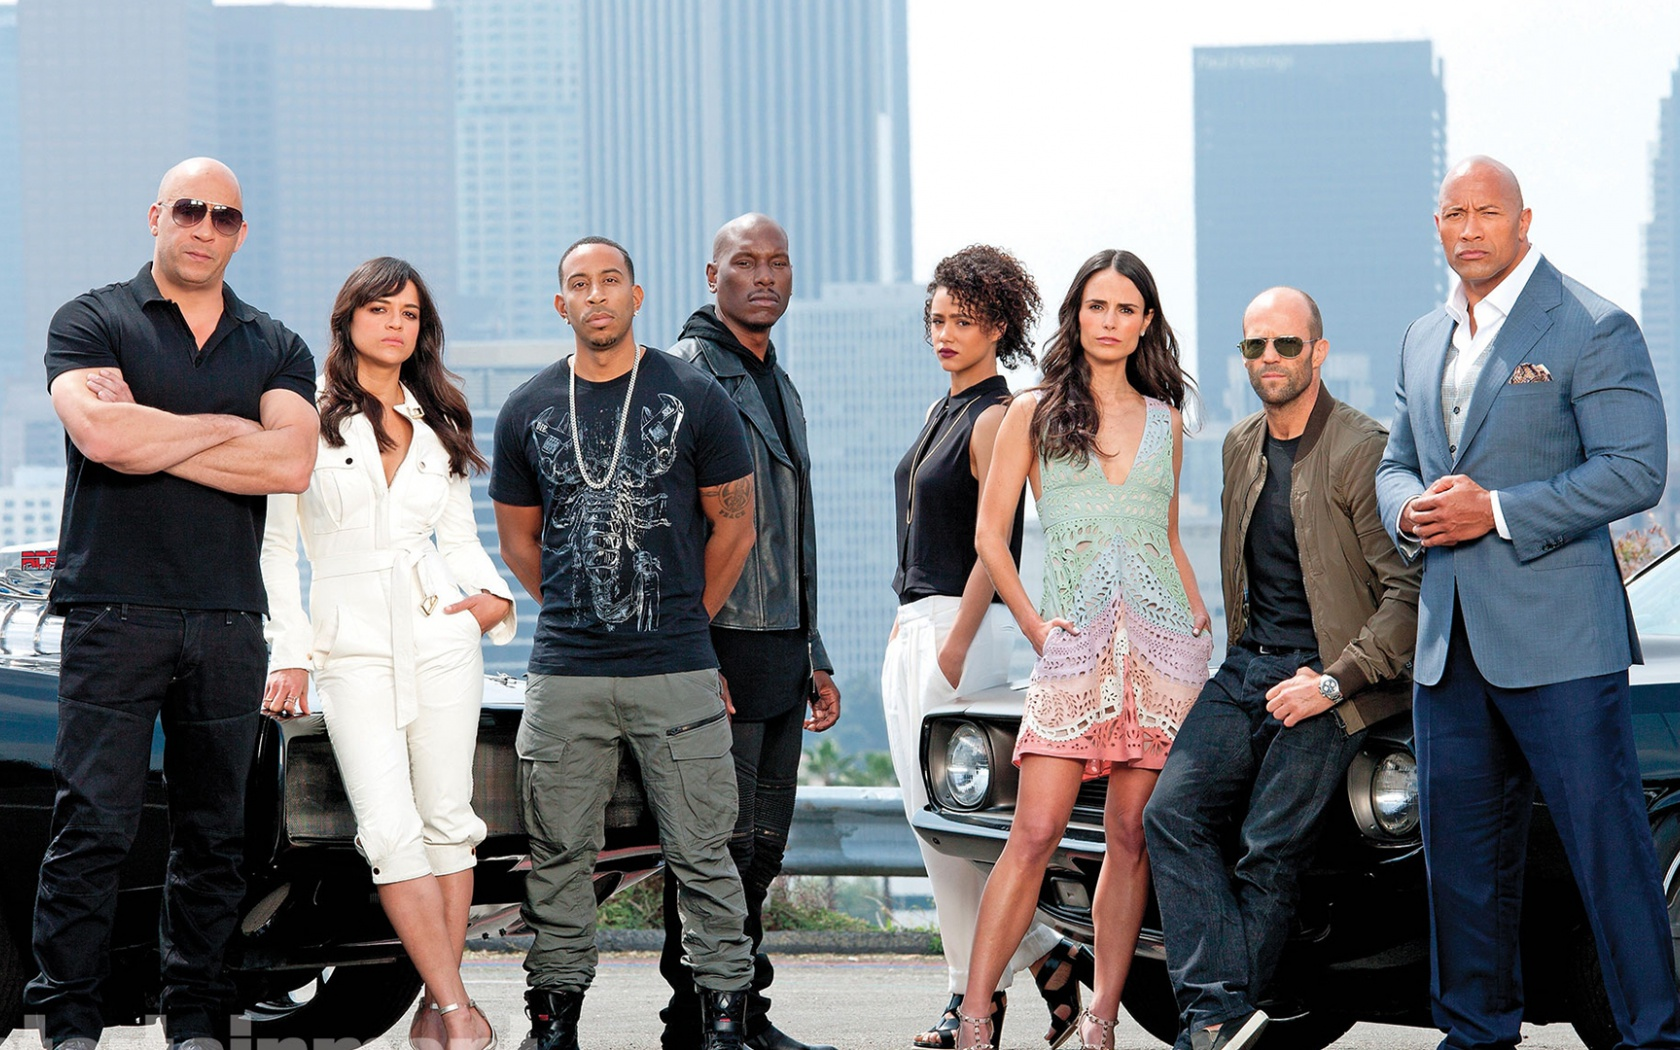 1680x1050 Fast And Furious 7 Cast Desktop PC Mac Wallpaper